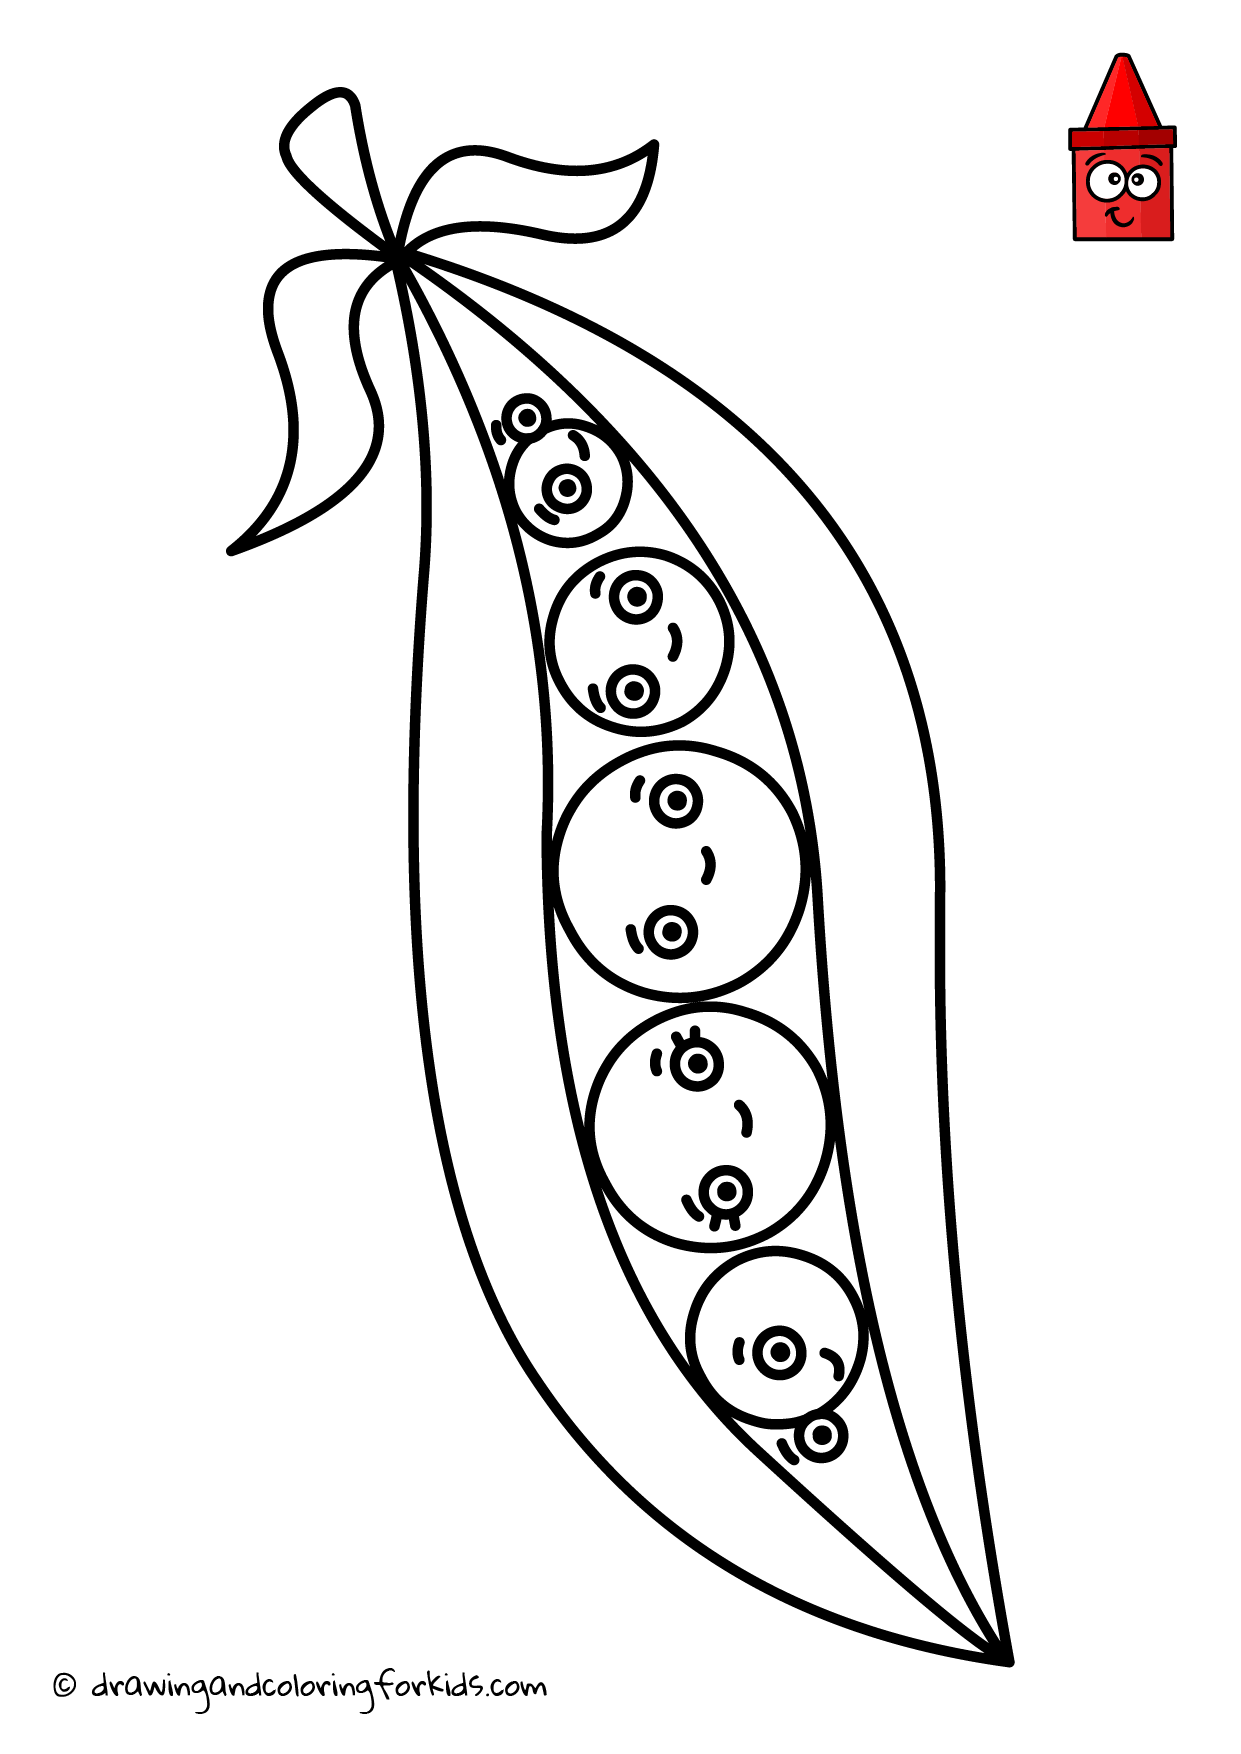 Coloring page peas in a pod coloring pages pinterest